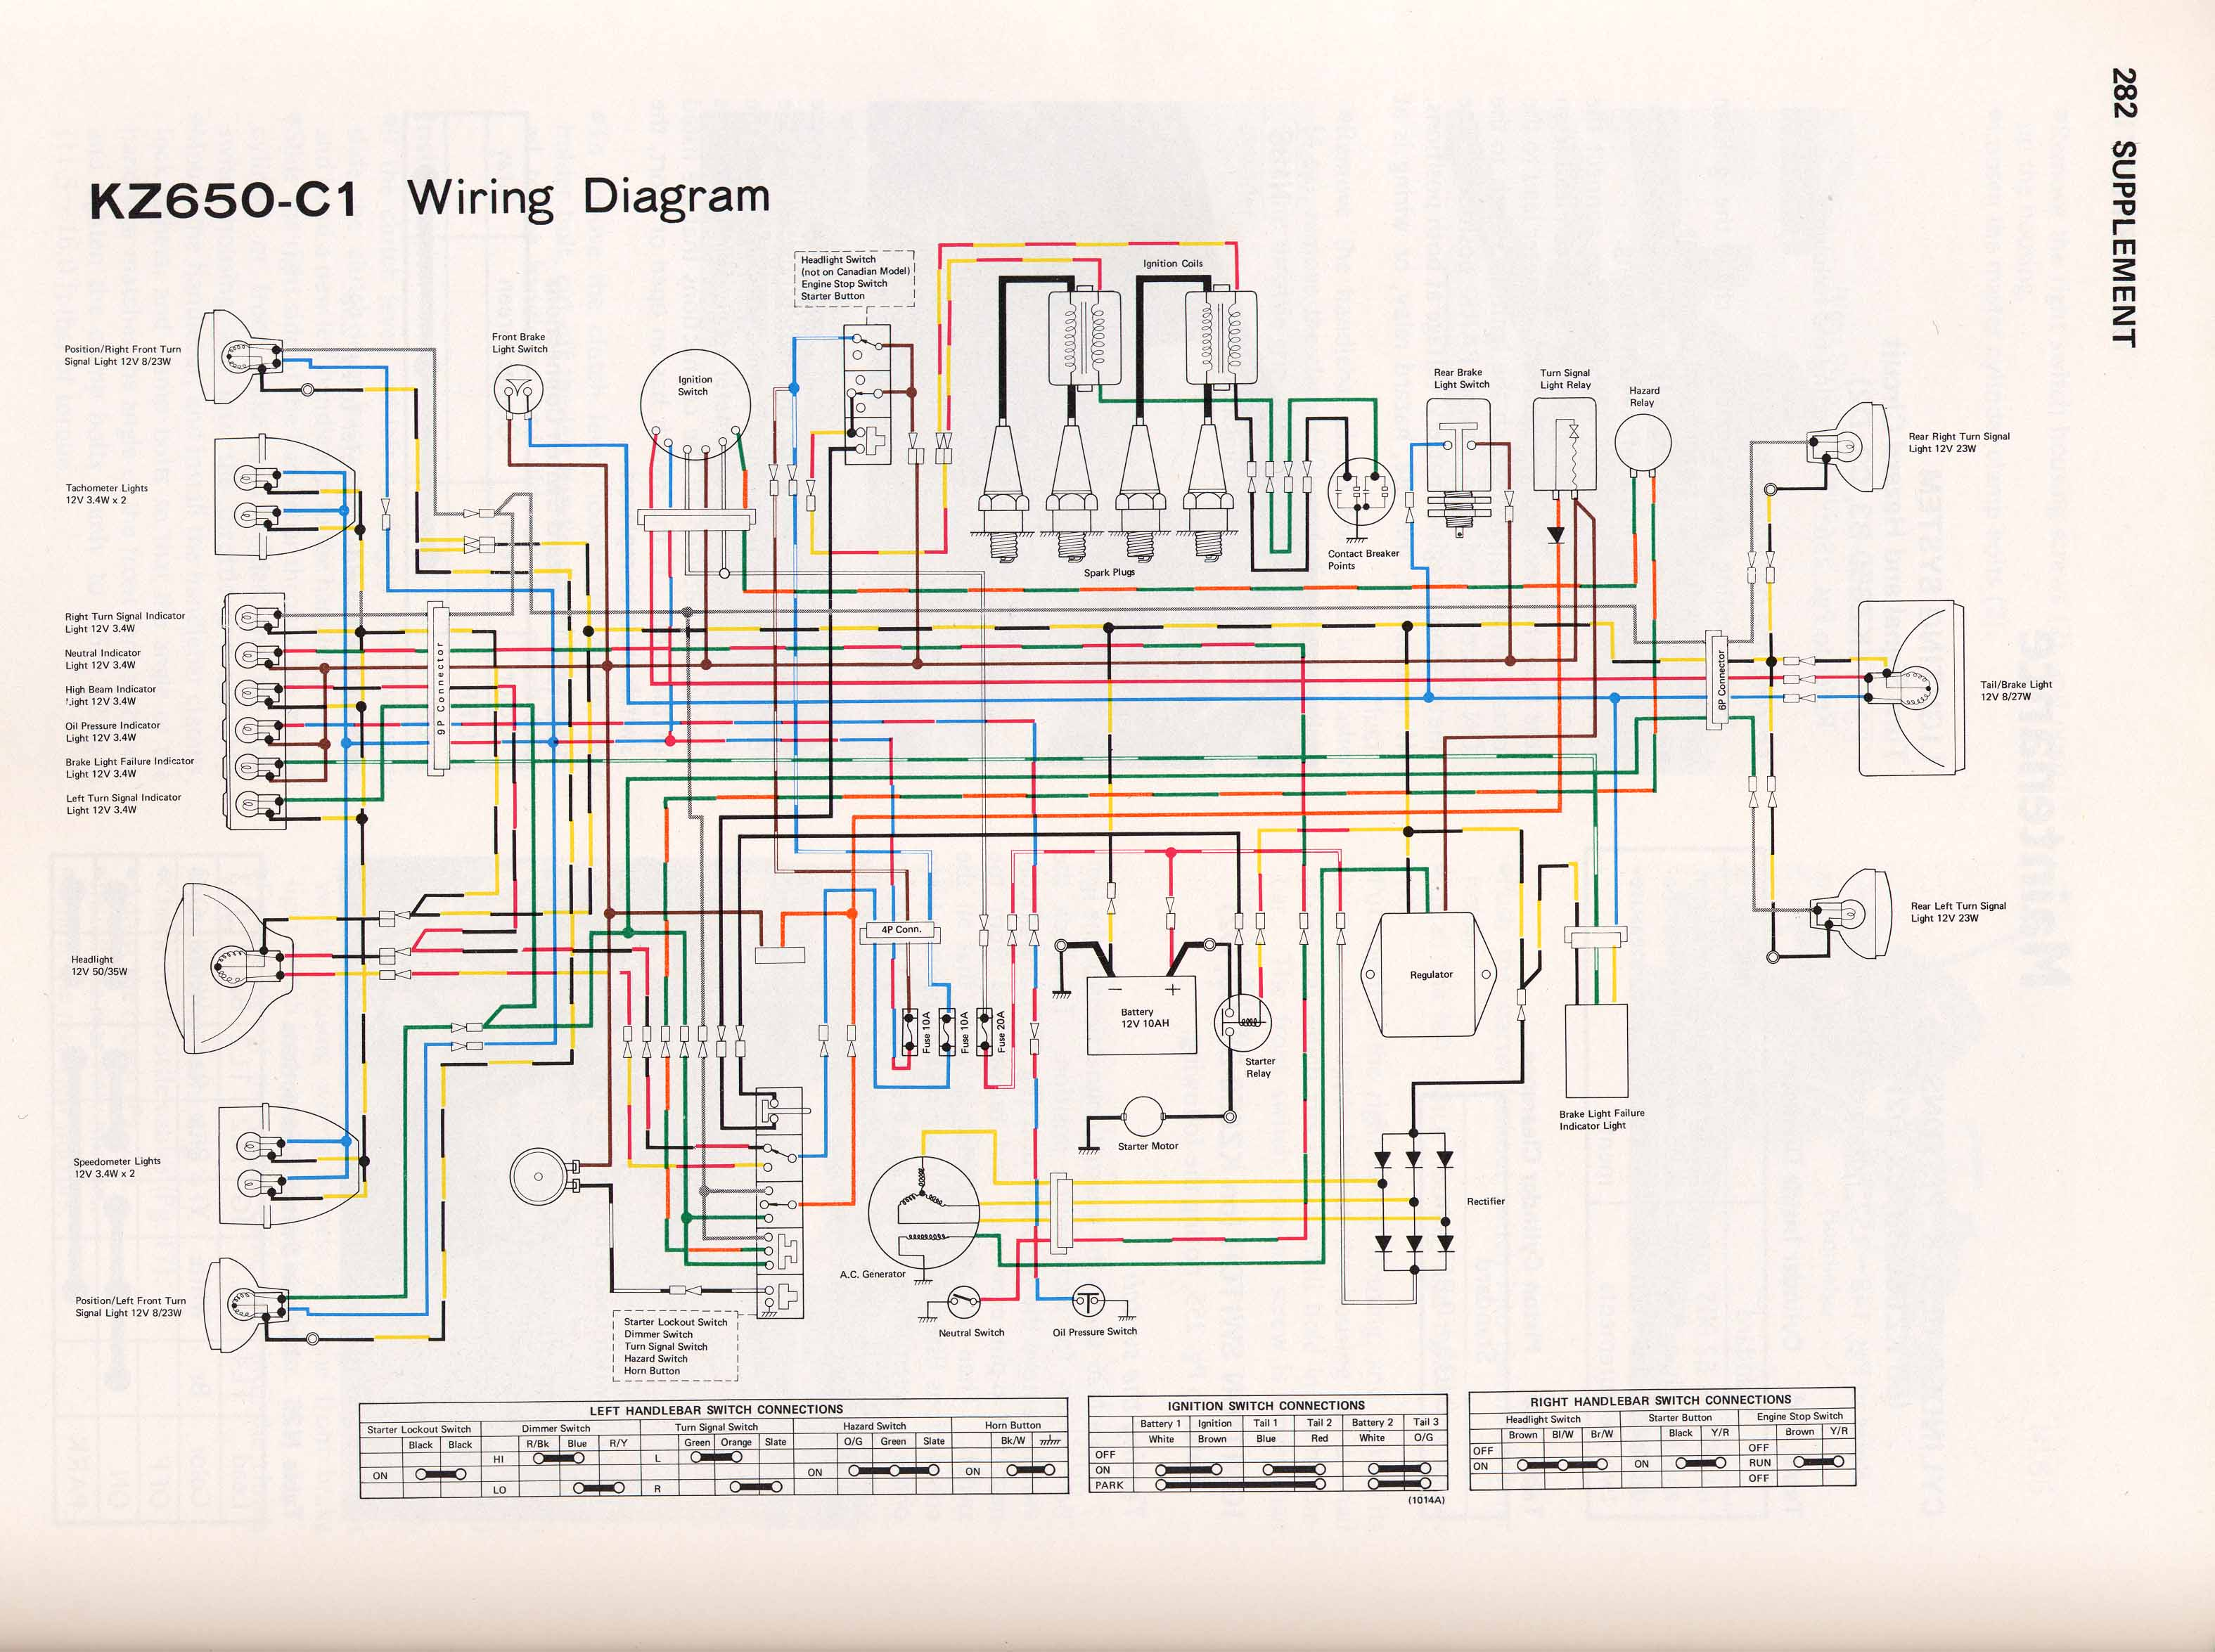 WiringDiagrams on kawasaki motorcycle wiring diagrams